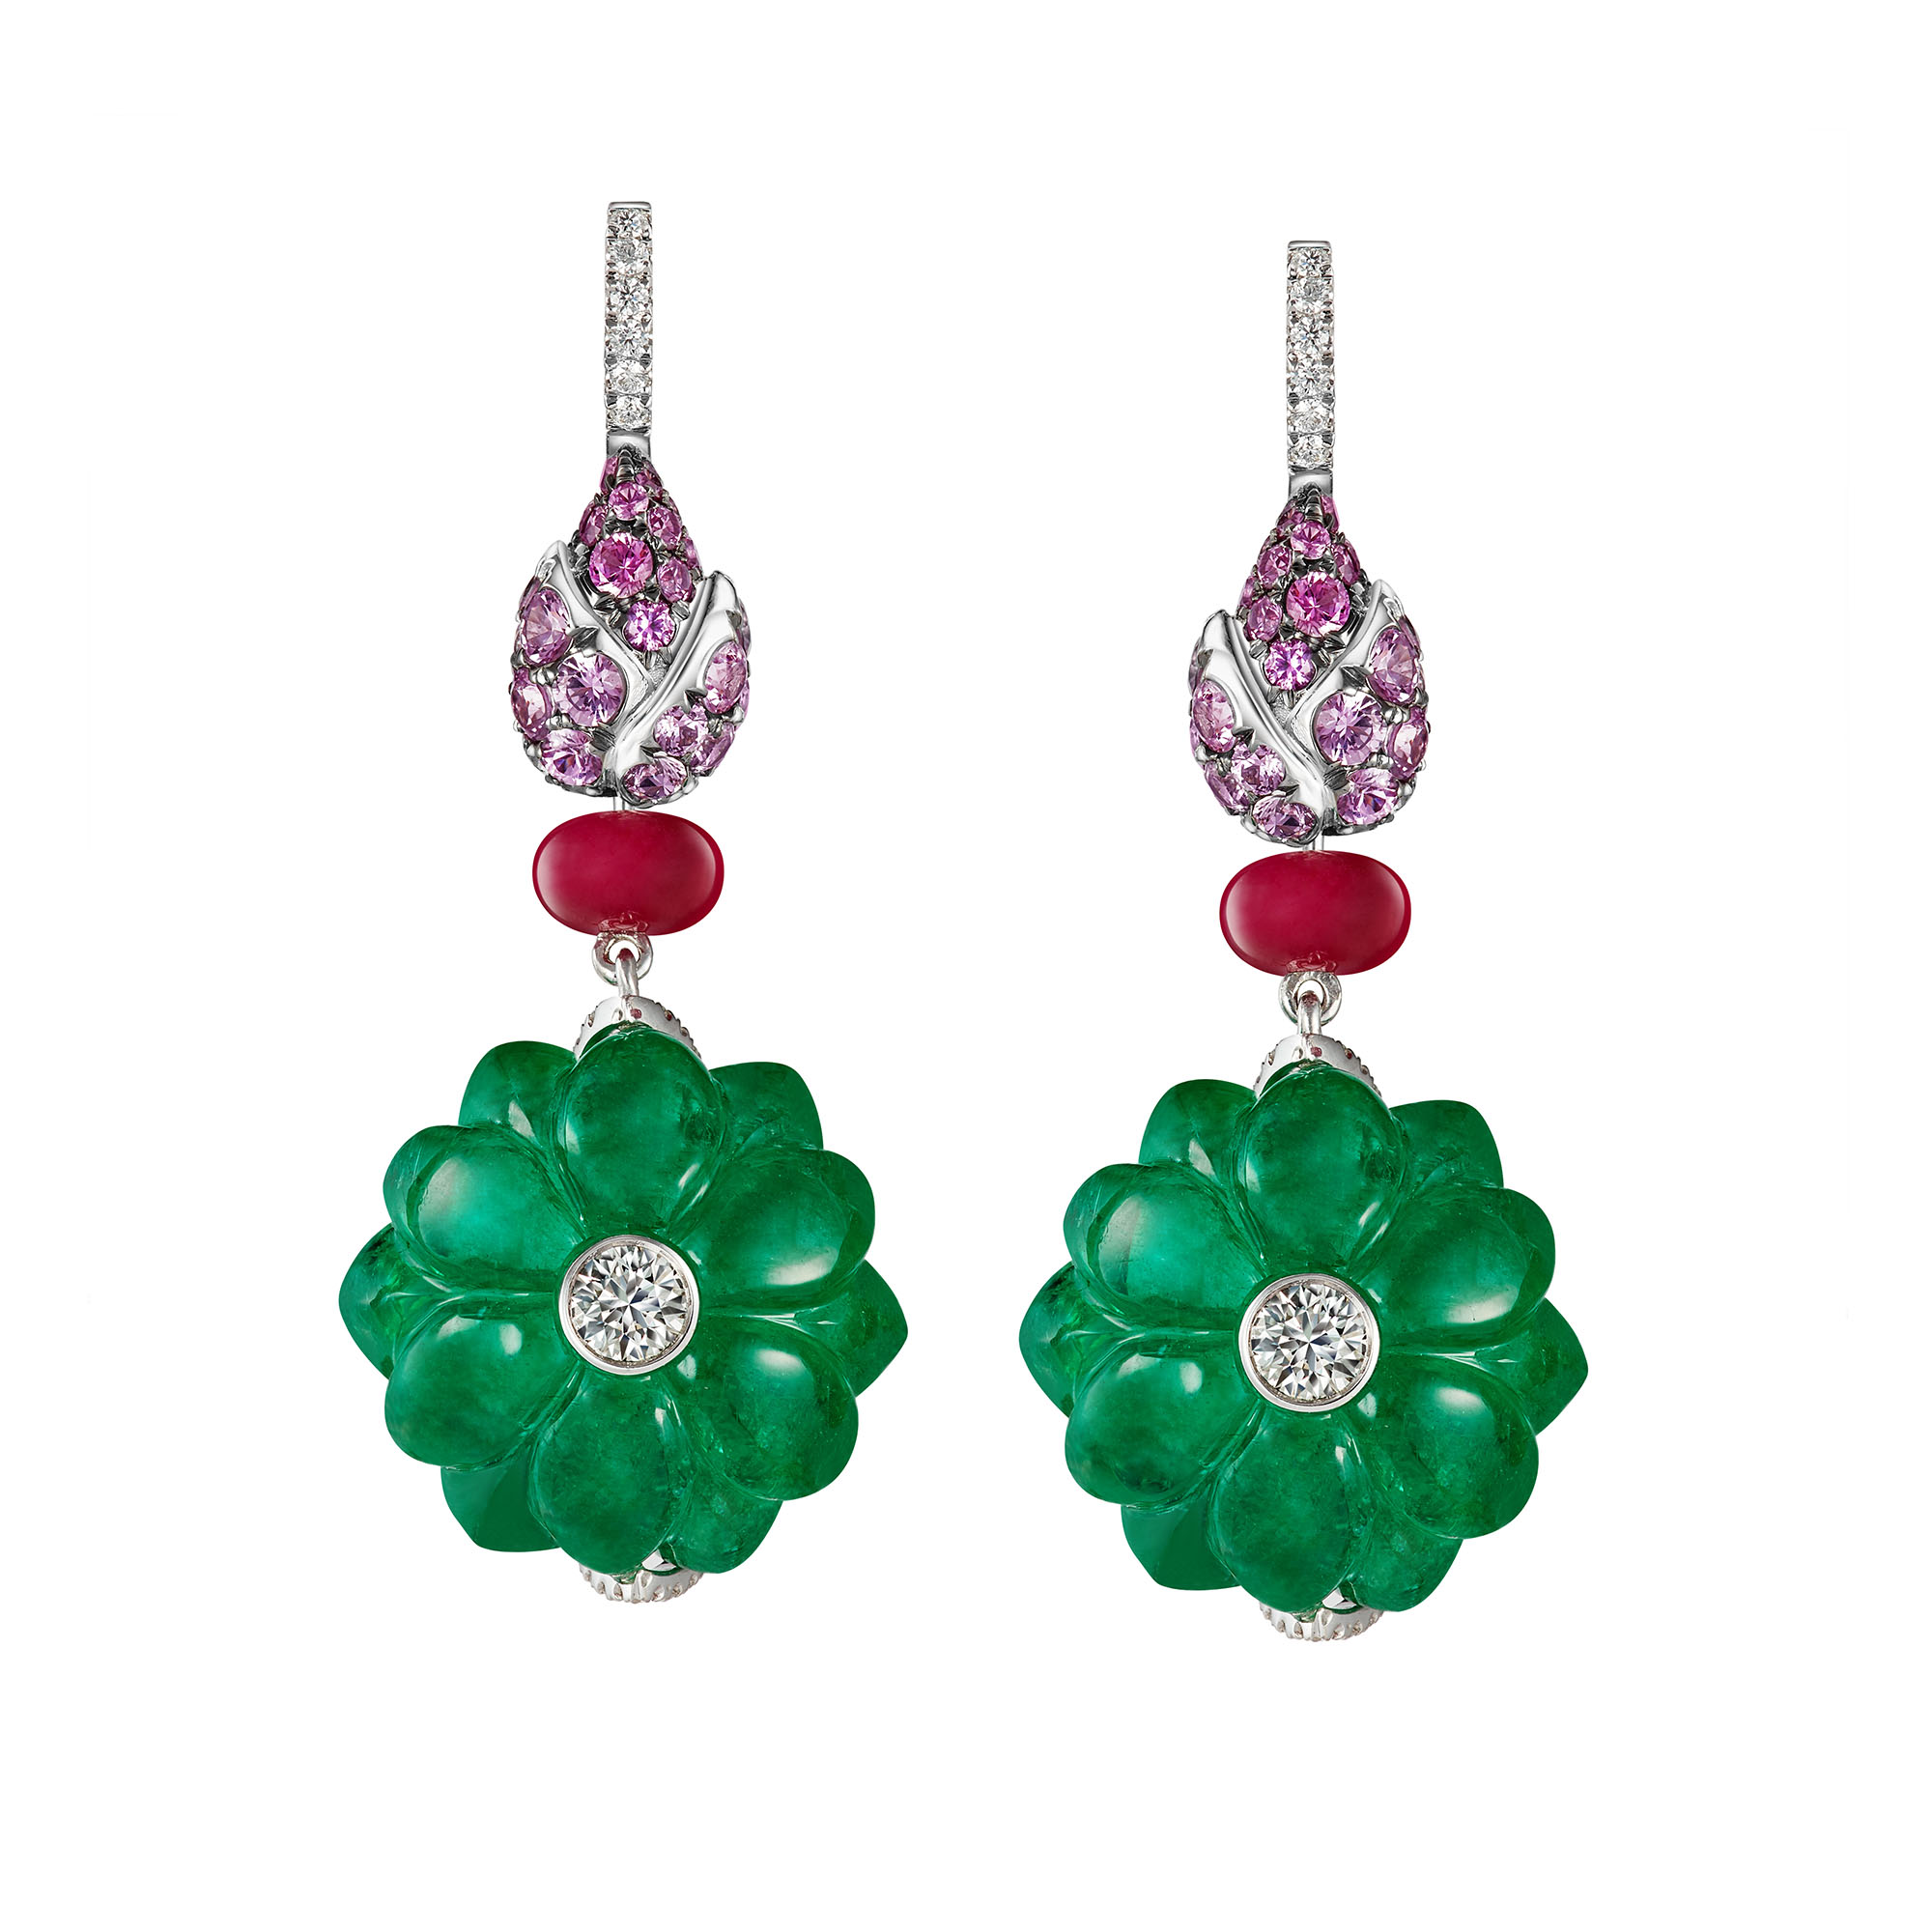 Blooming Emerald Earrings